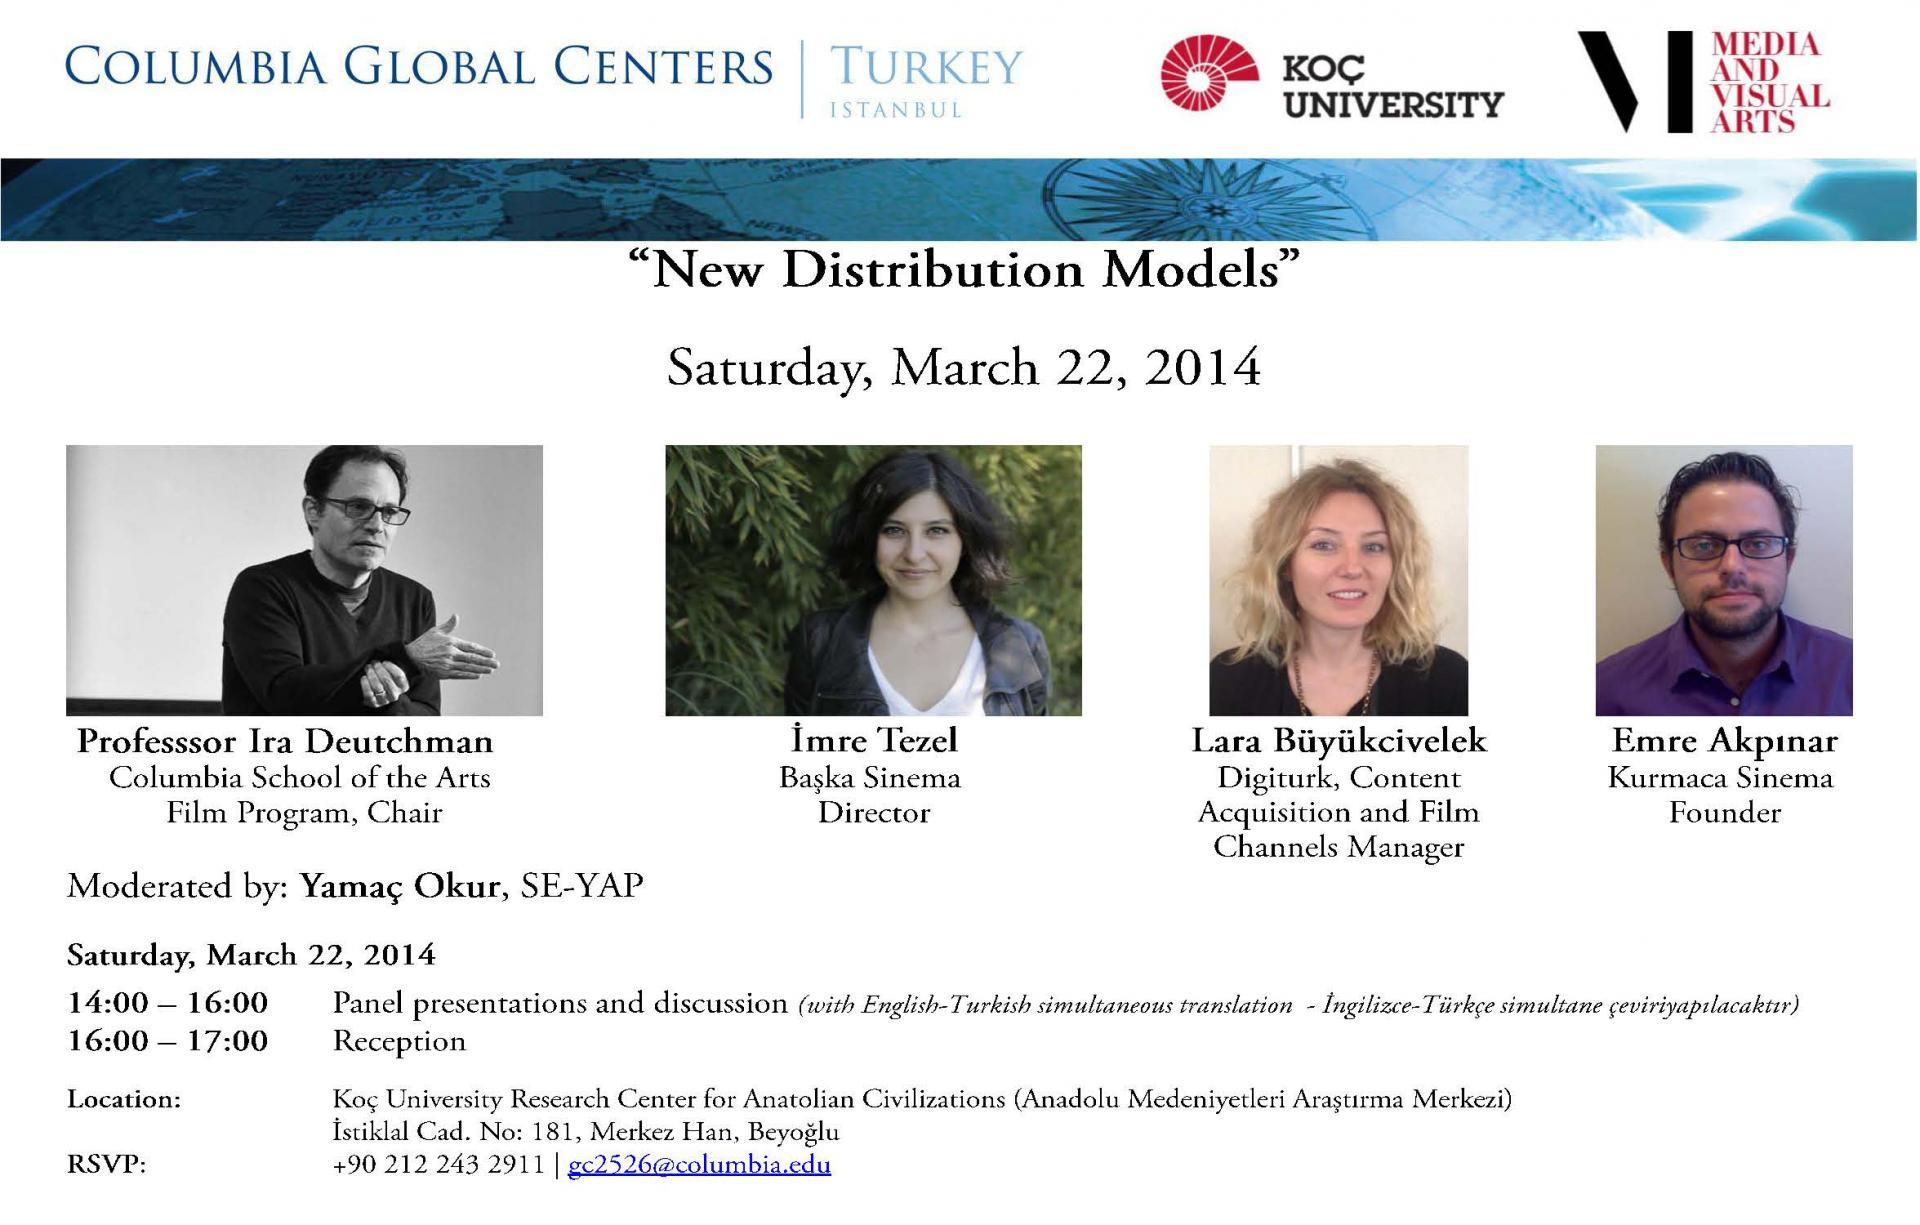 New Distribution Models: A Public Discussion with Prof. Ira Deutchman of the Film Program